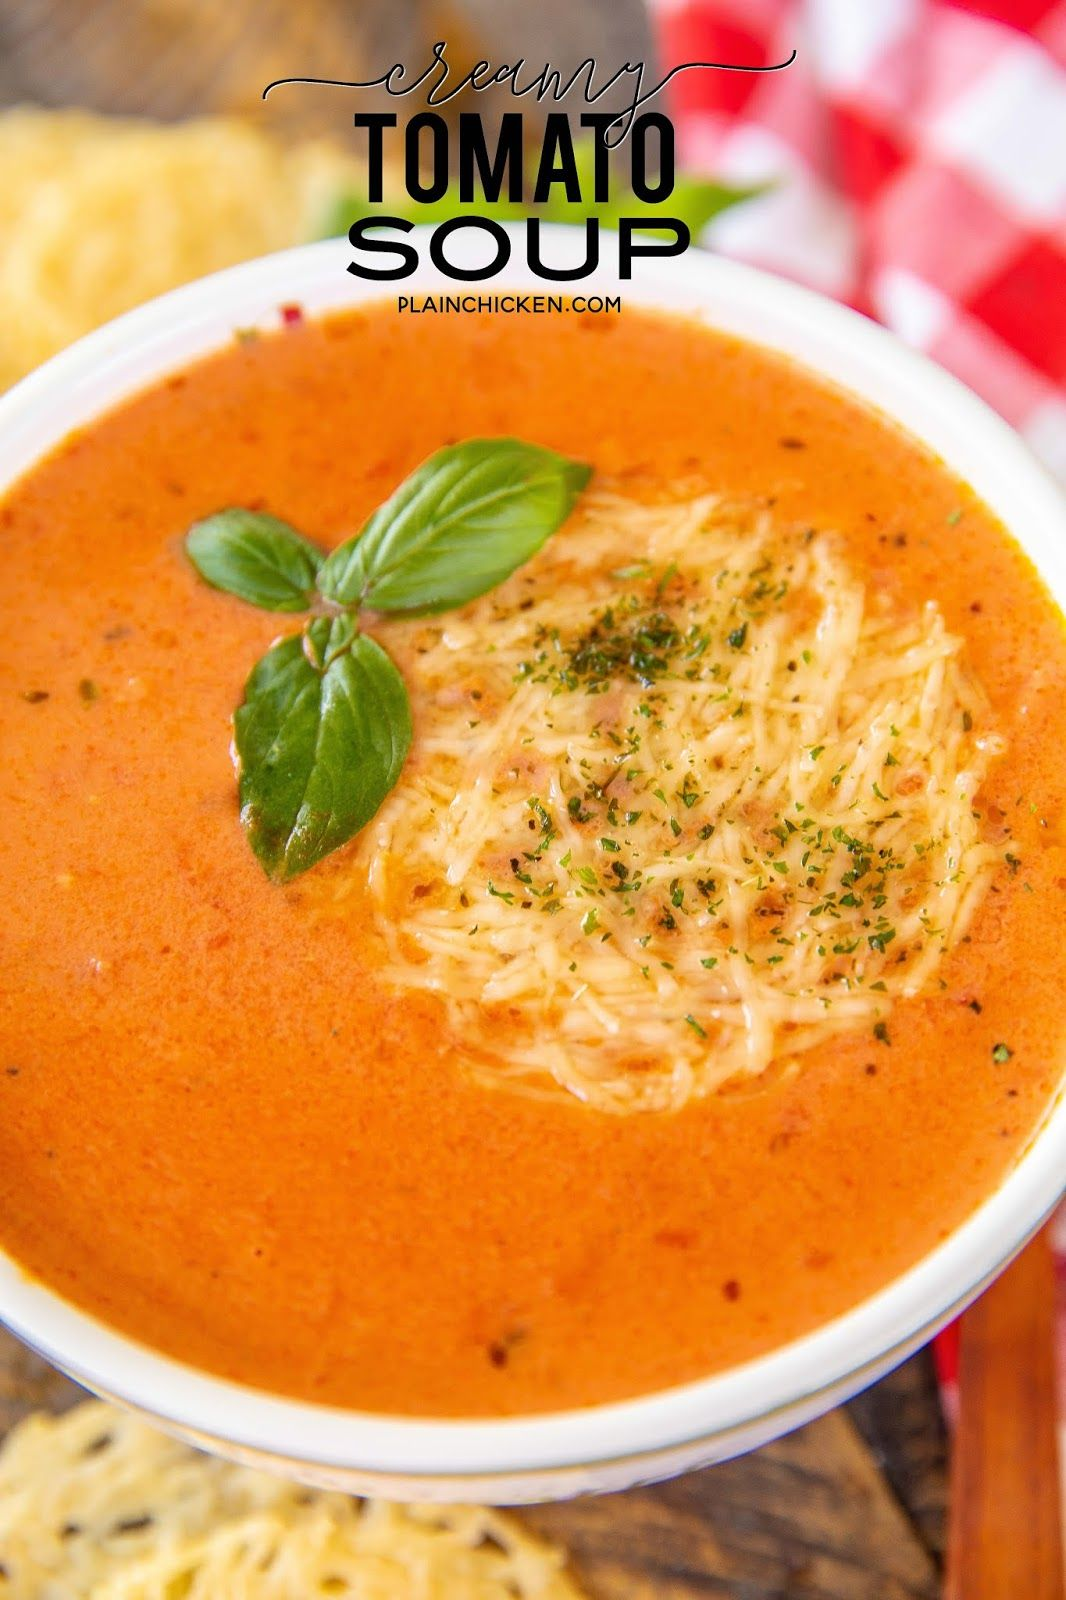 Creamy Tomato Soup - grown up version of my favorite soup as a kid. Shallot, butter, garlic, oregano, red pepper flakes, tomato juice, crushed tomatoes, chicken base, sugar, heavy cream, salt and pepper. We served the soup with some yummy parmesan crisps. Also delicious leftover!